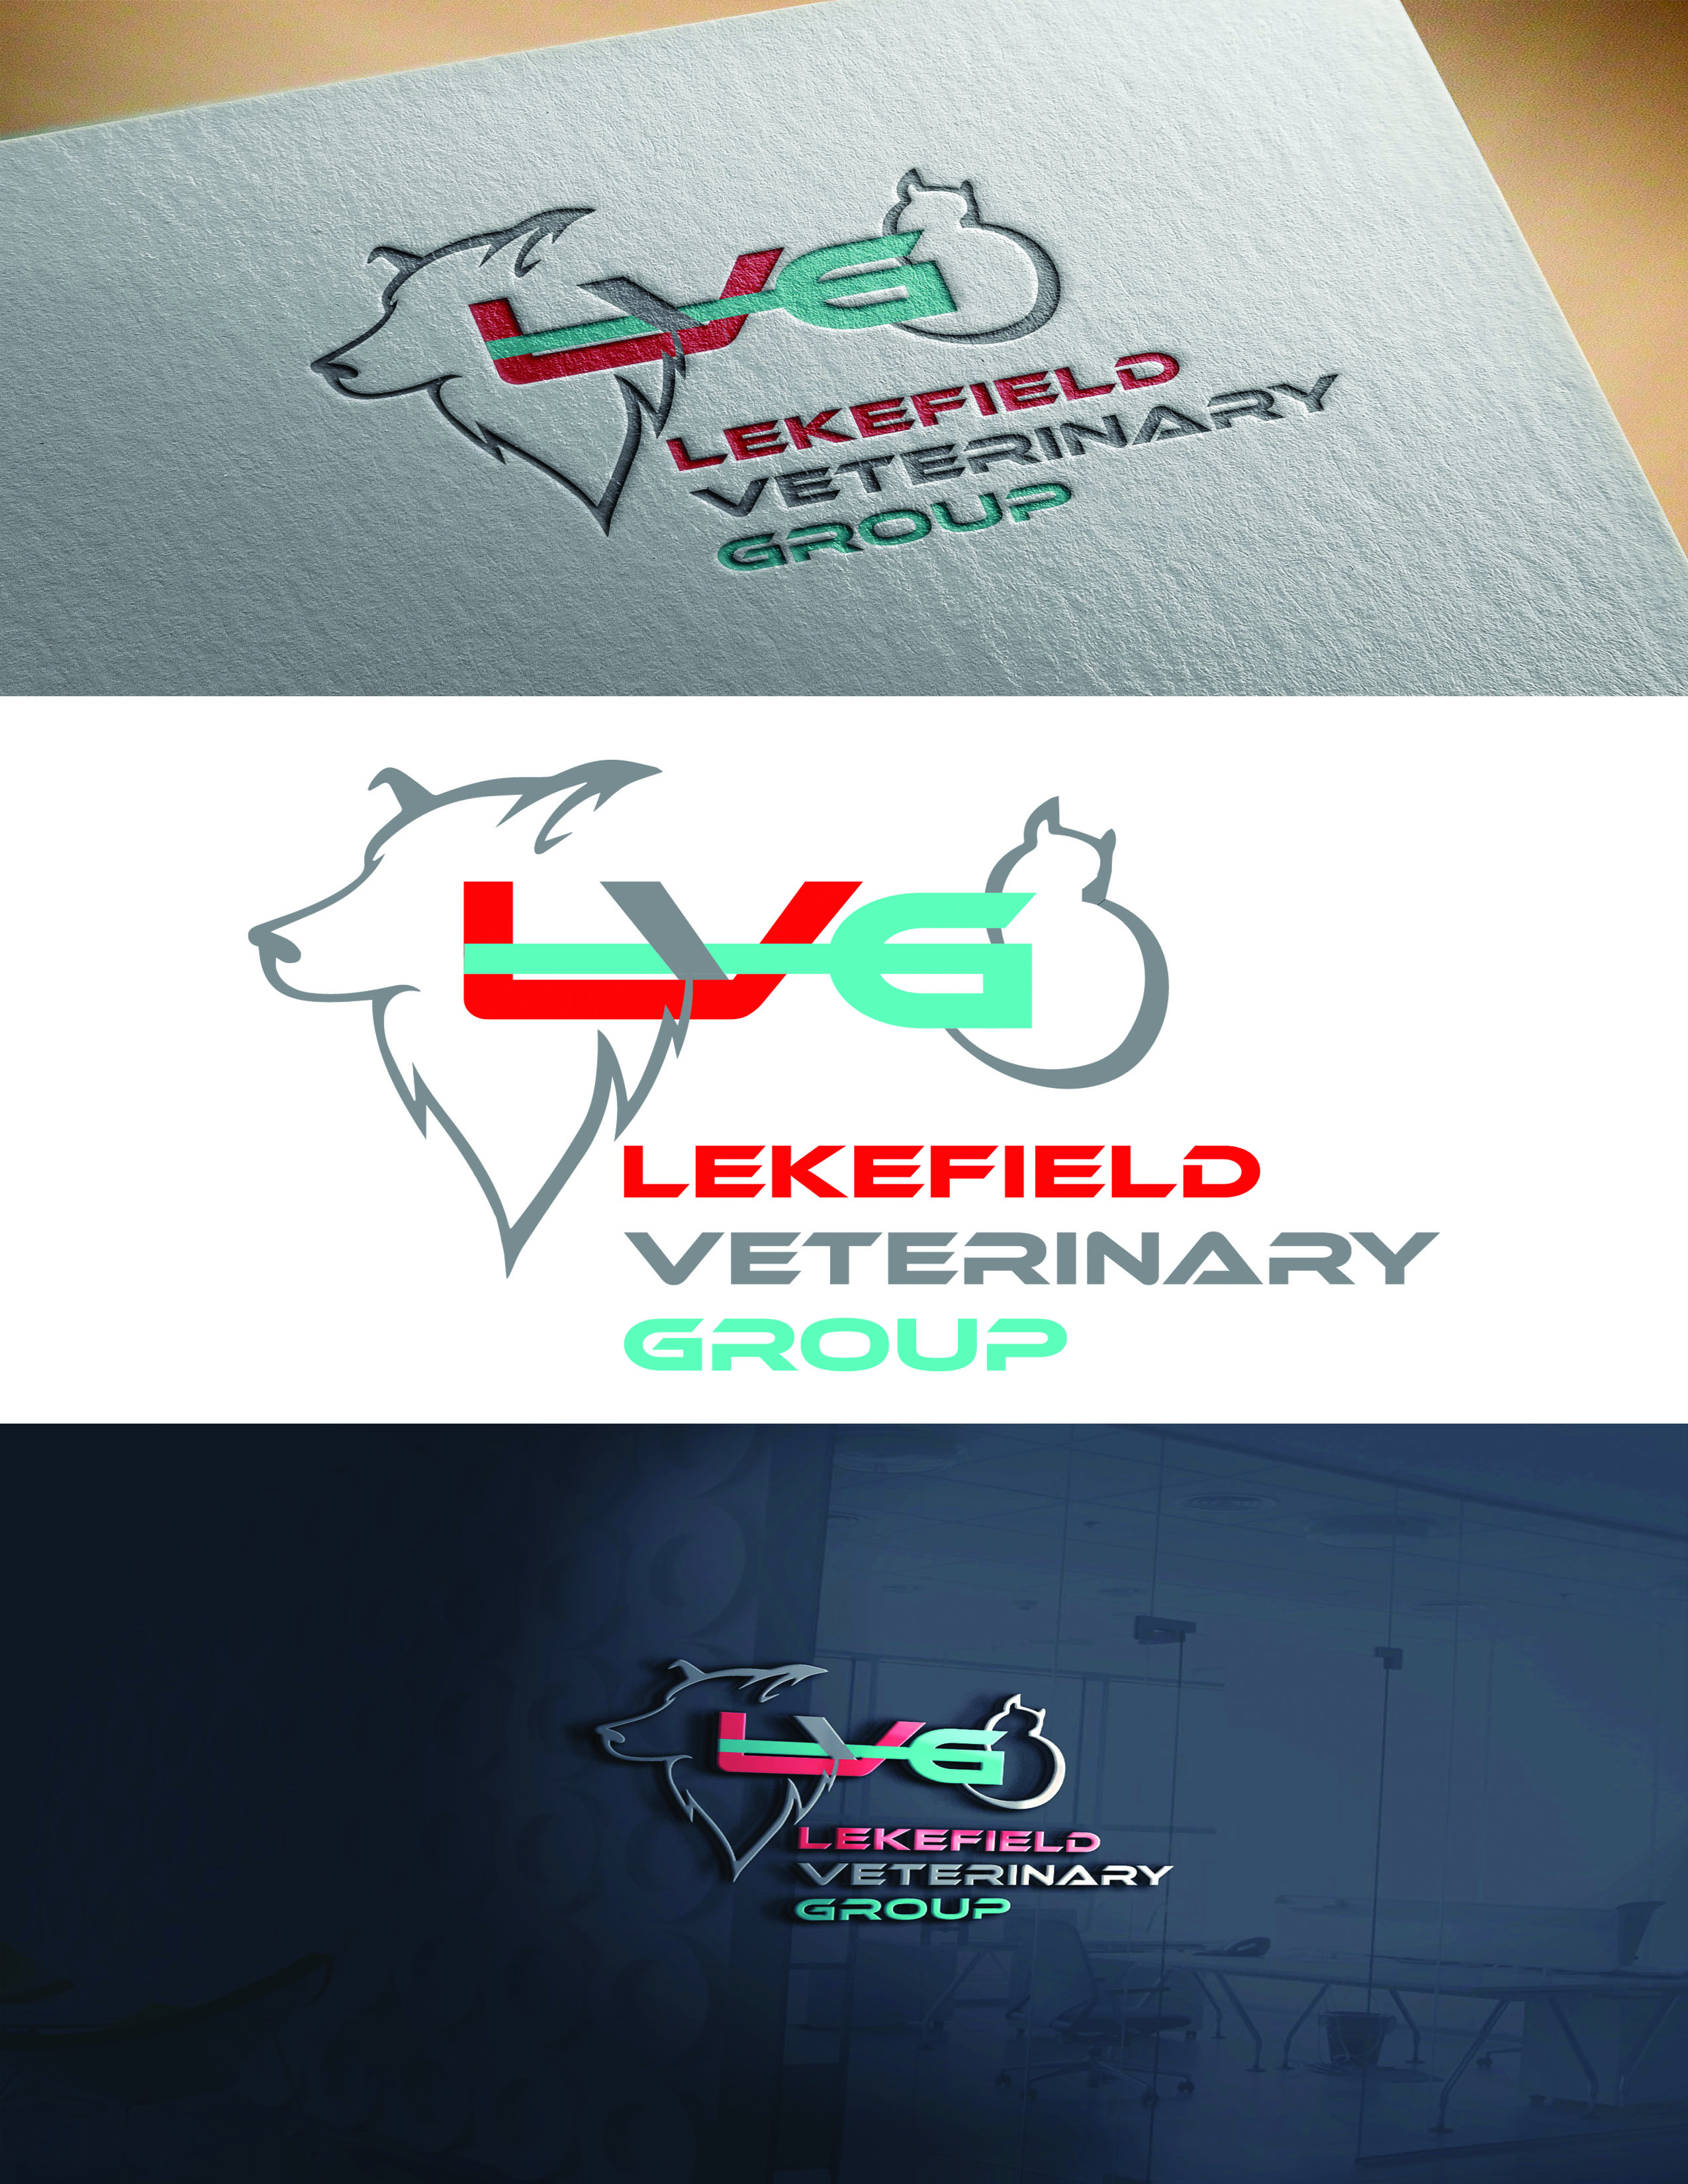 Logo Design by Umair ahmed Iqbal - Entry No. 38 in the Logo Design Contest Inspiring Logo Design for Lakefield Veterinary Group.